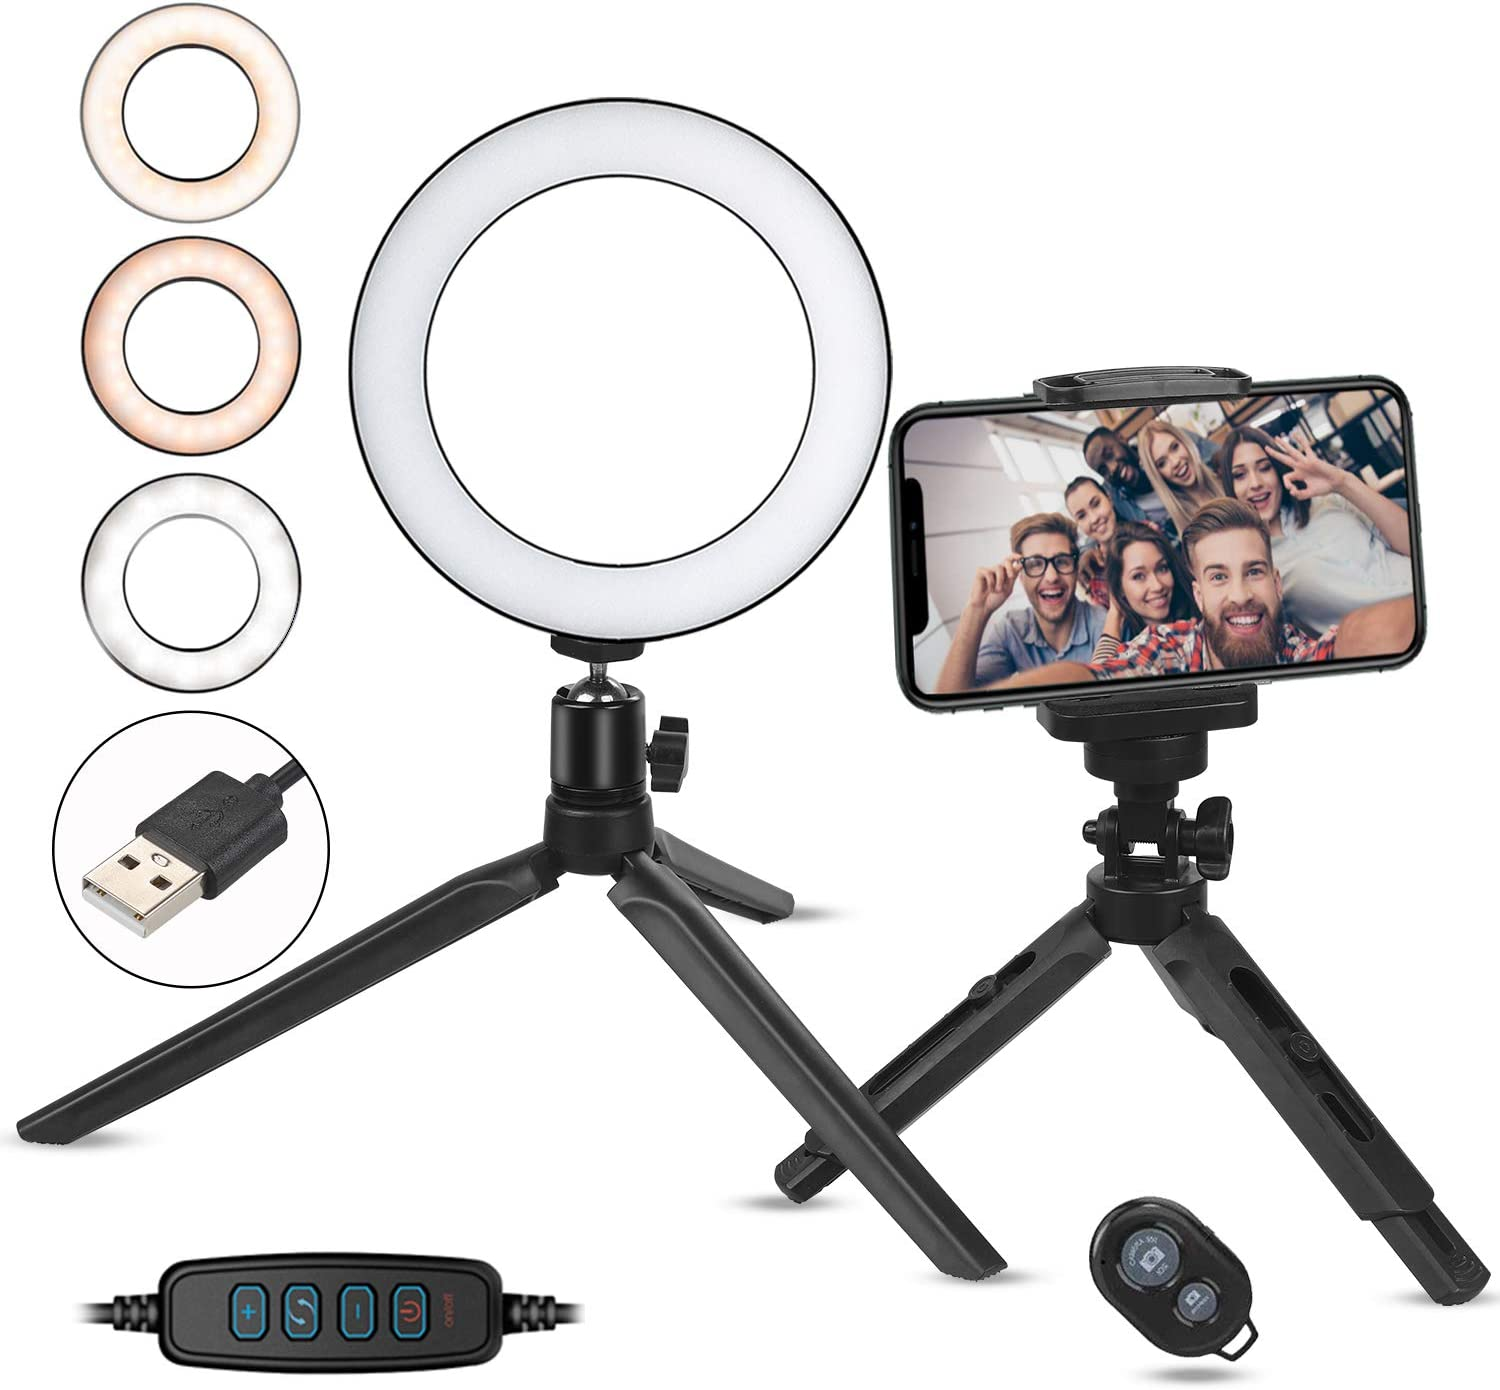 Dimmable Desk Makeup Ring Light for Photography Size : 14.5CM LED Ring Light with Tripod Stand /& Phone Holder for Live Streaming /& YouTube Video